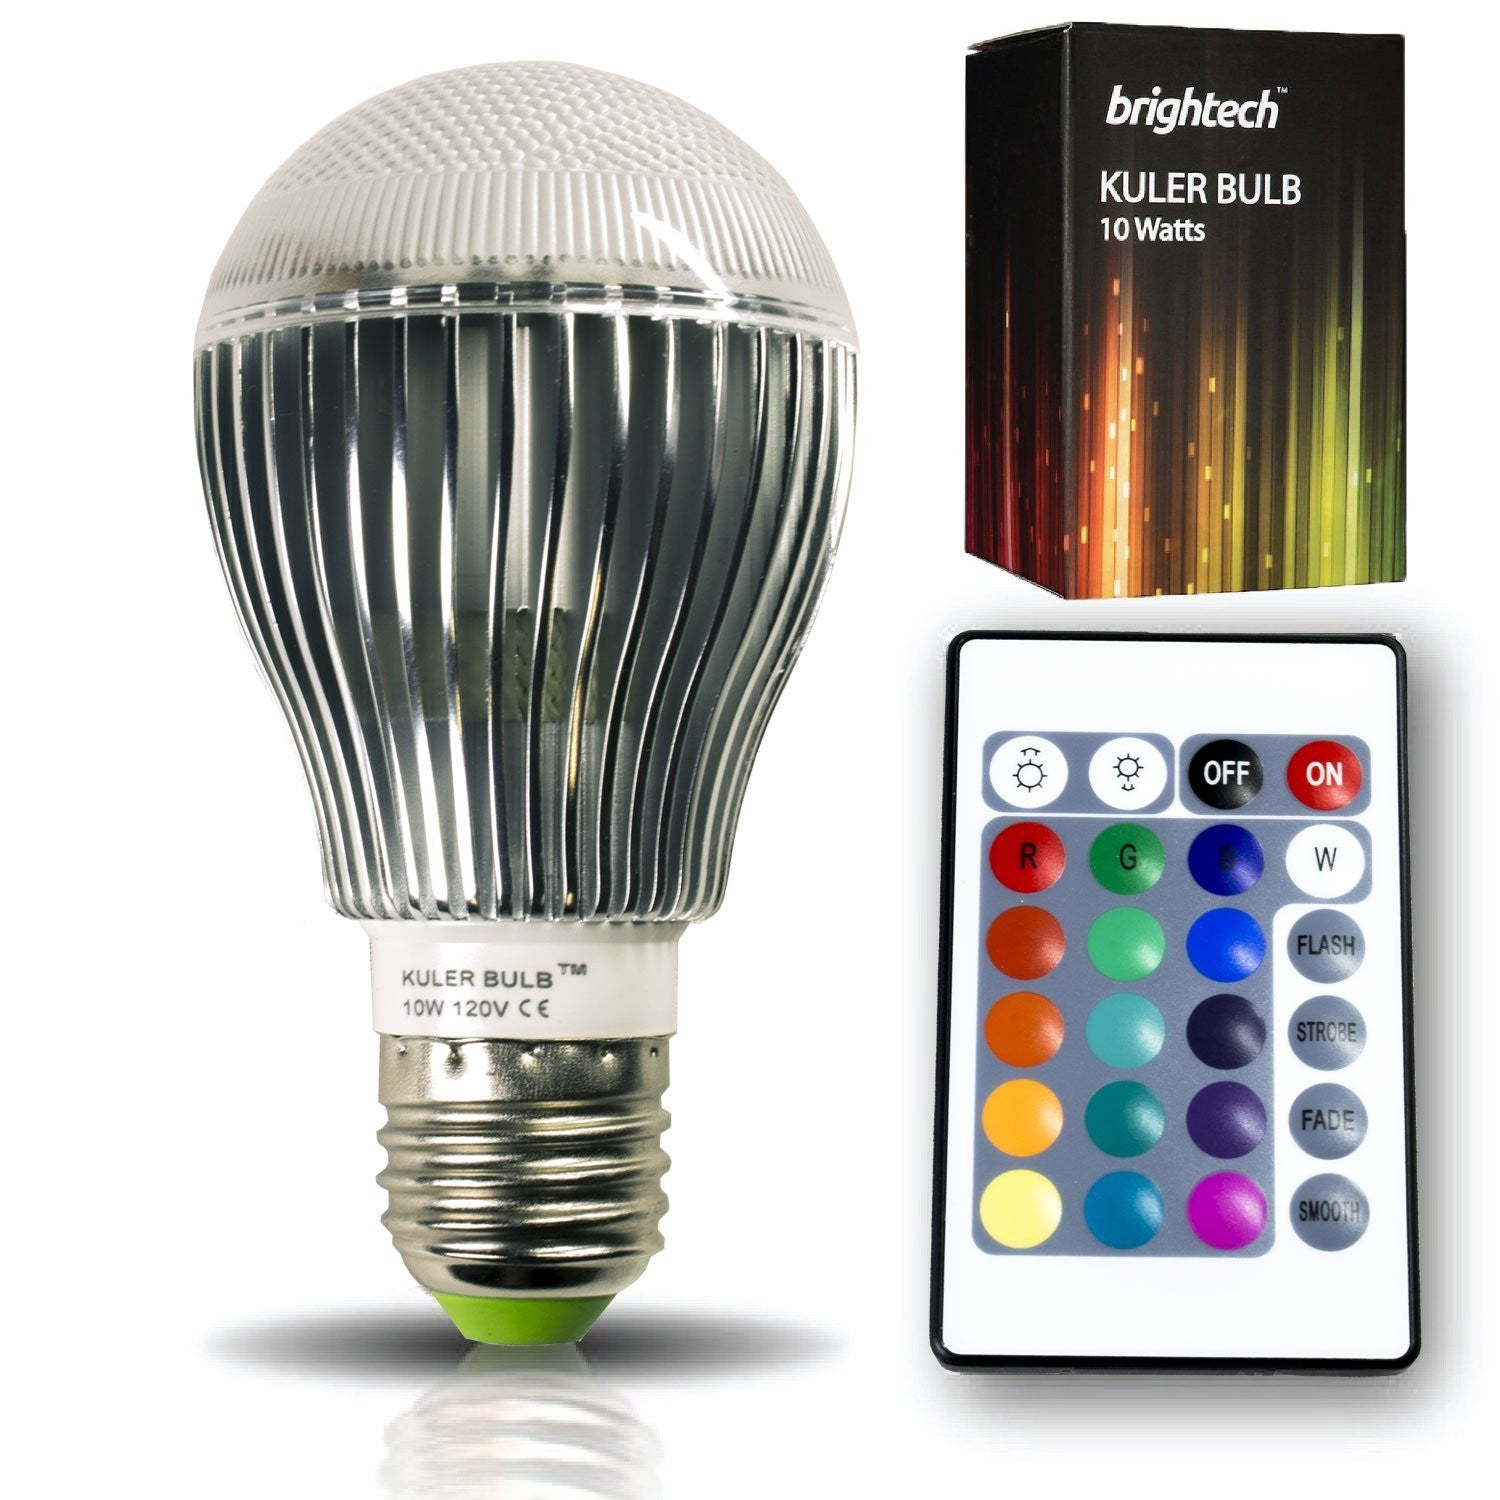 the original kuler bulb 10watt color changing led light bulb with remote control powered by 3 vibrant ledu0027s and 10 watts of power its the brightest